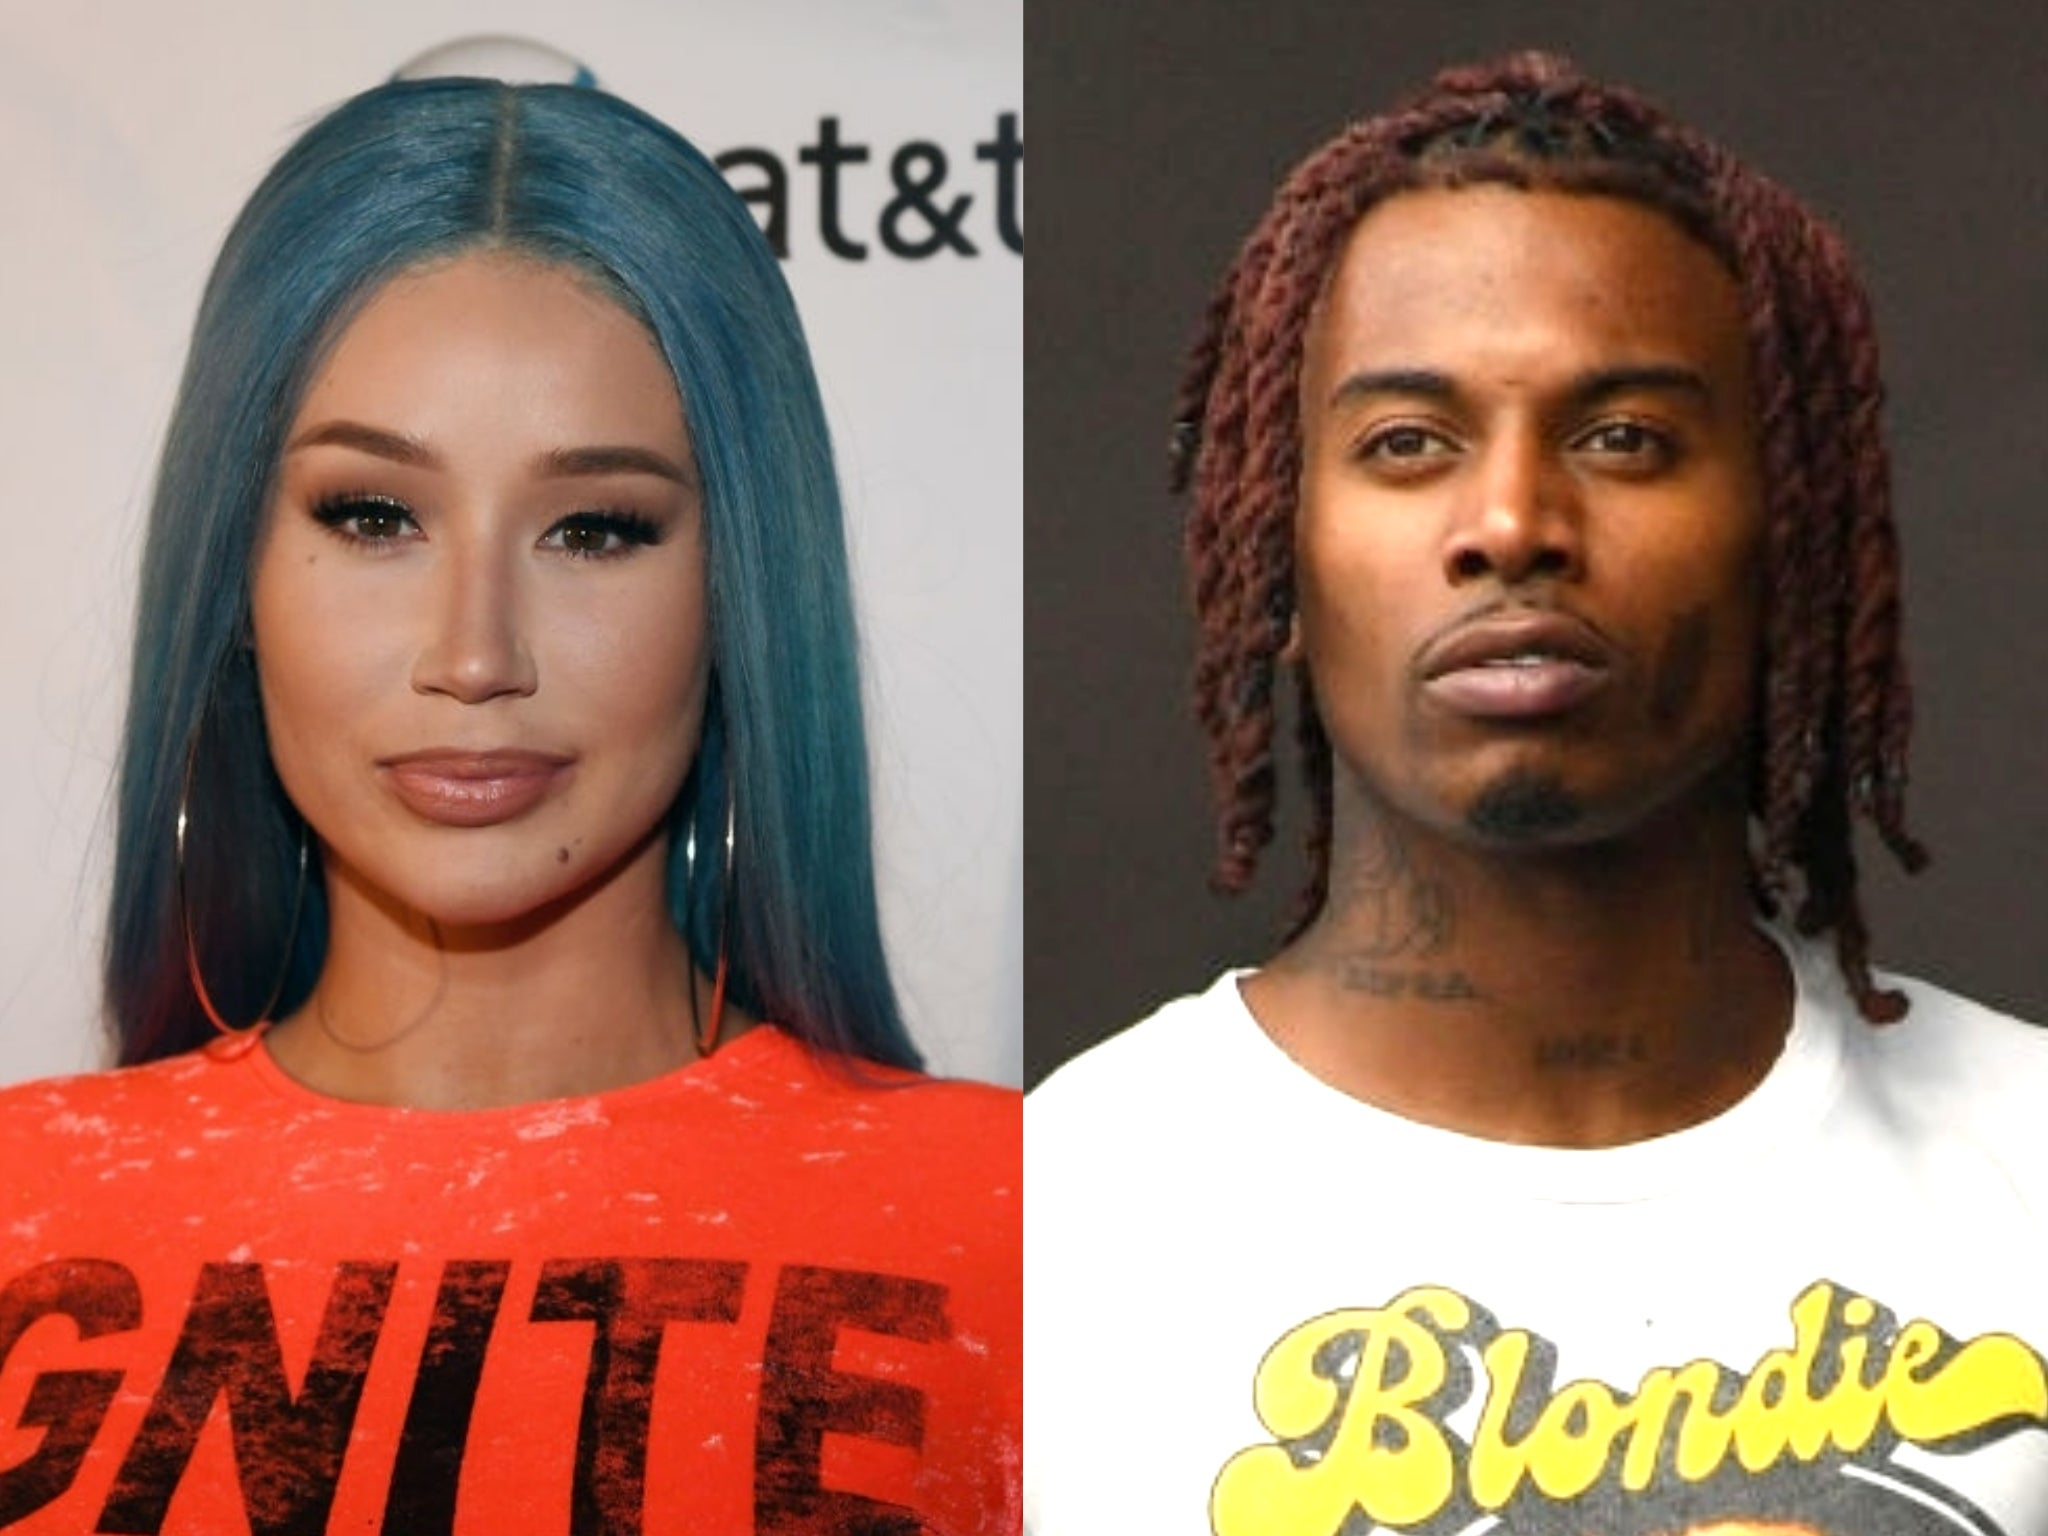 Iggy Azalea condemns Playboi Carti for 'missing Christmas with their son' to release album instead